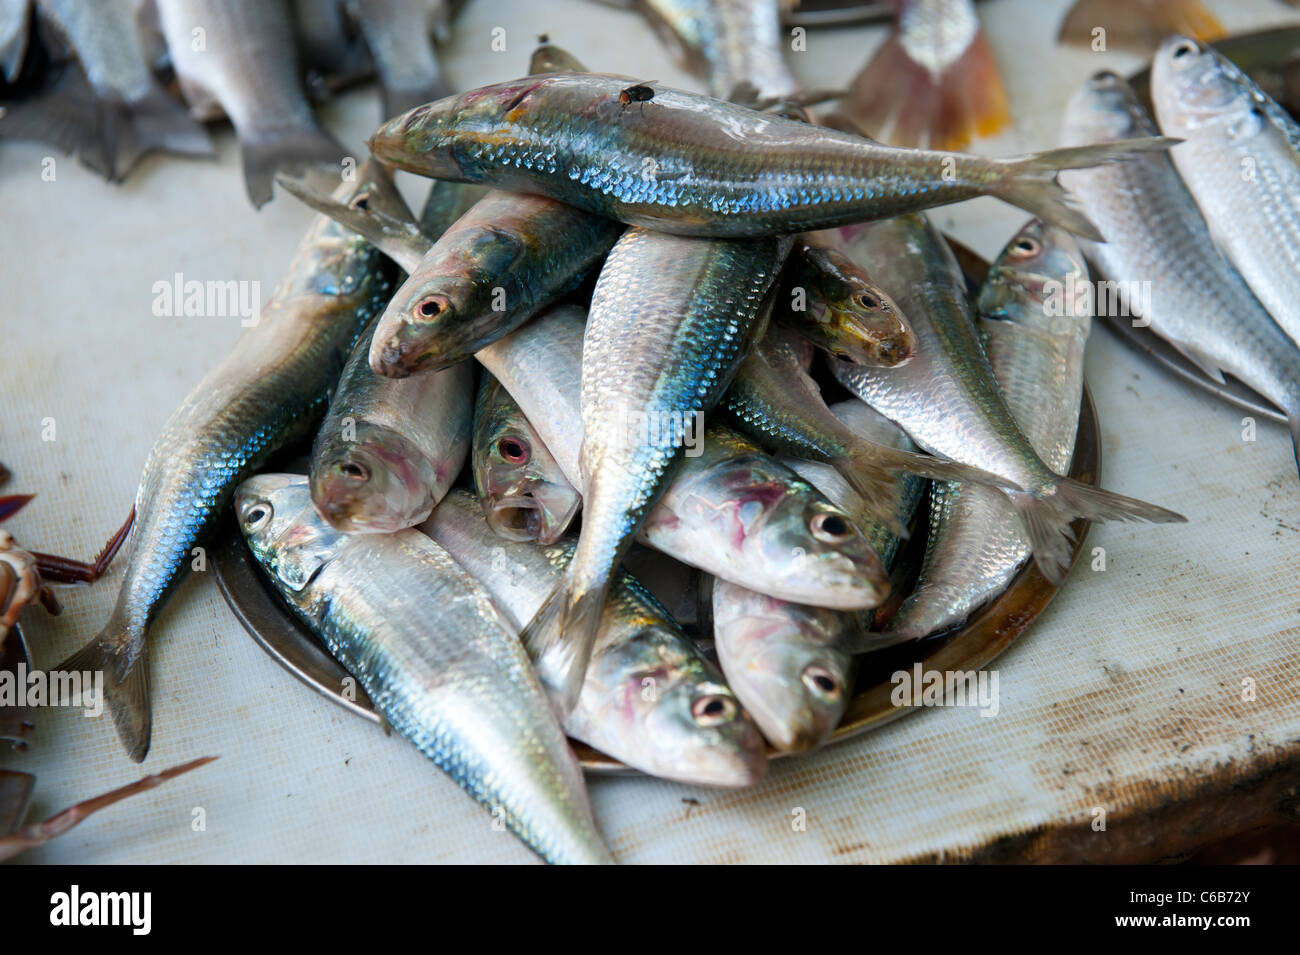 Freshly caught fish on a market stall near the chinese for Chinese fish market near me